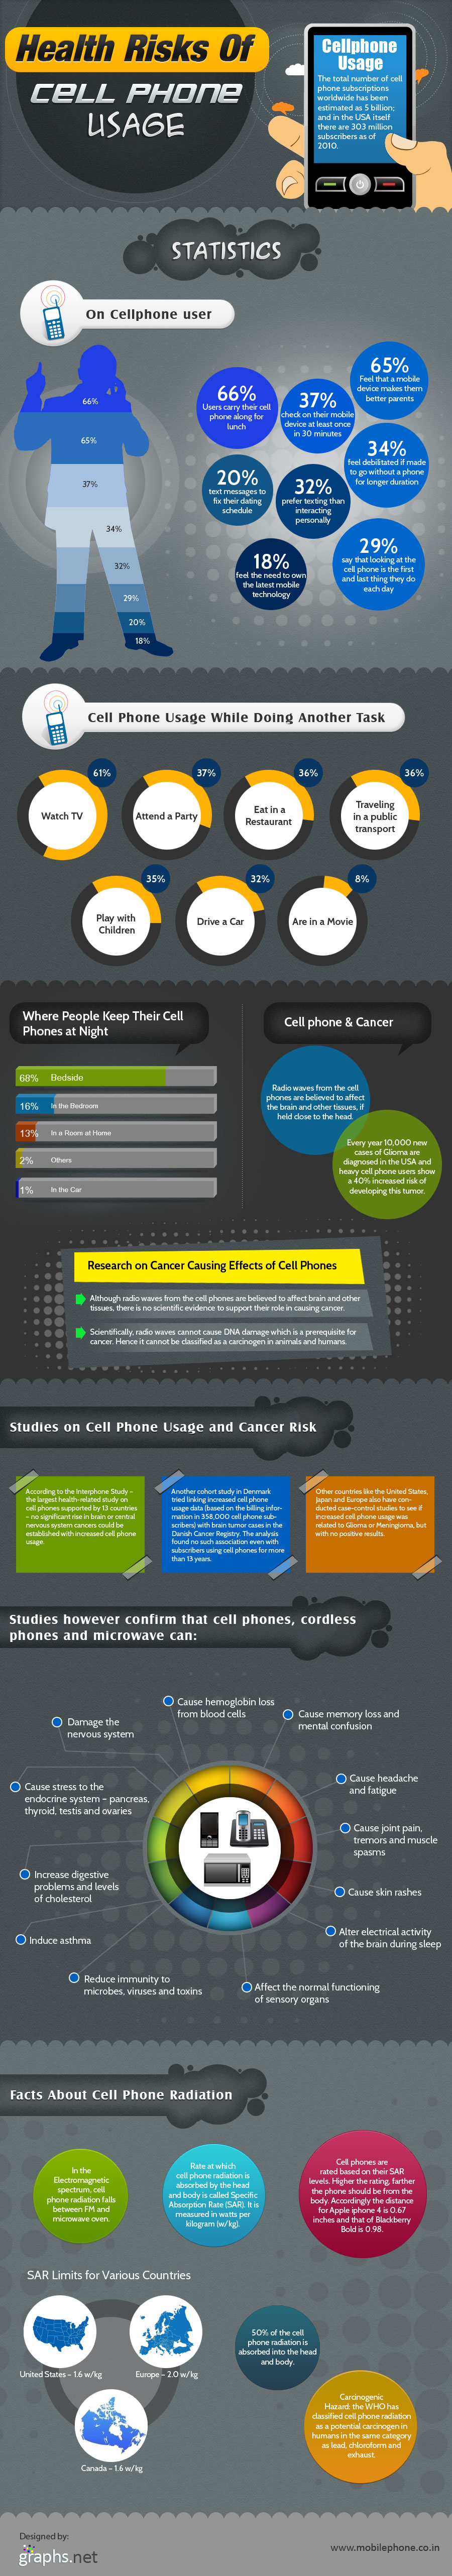 Cell Phone Usage and associated health risks